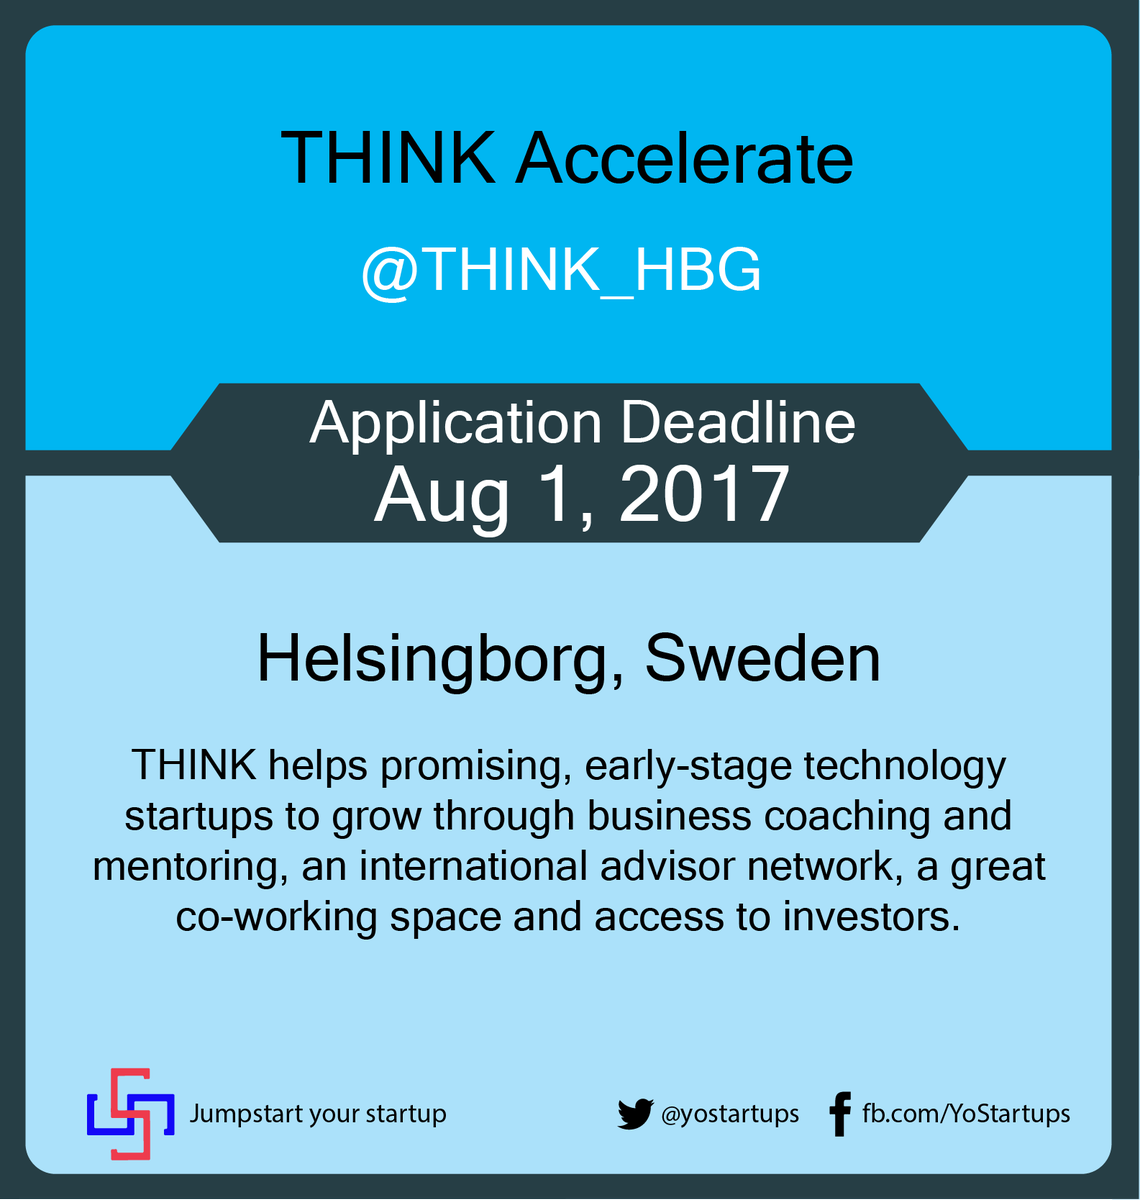 Checkout @THINK_HBG accelerating early stage startup through ideation to product-market fit #accelerator #yostartups  https:// goo.gl/rYDNsP  &nbsp;  <br>http://pic.twitter.com/lhZppTMVpJ